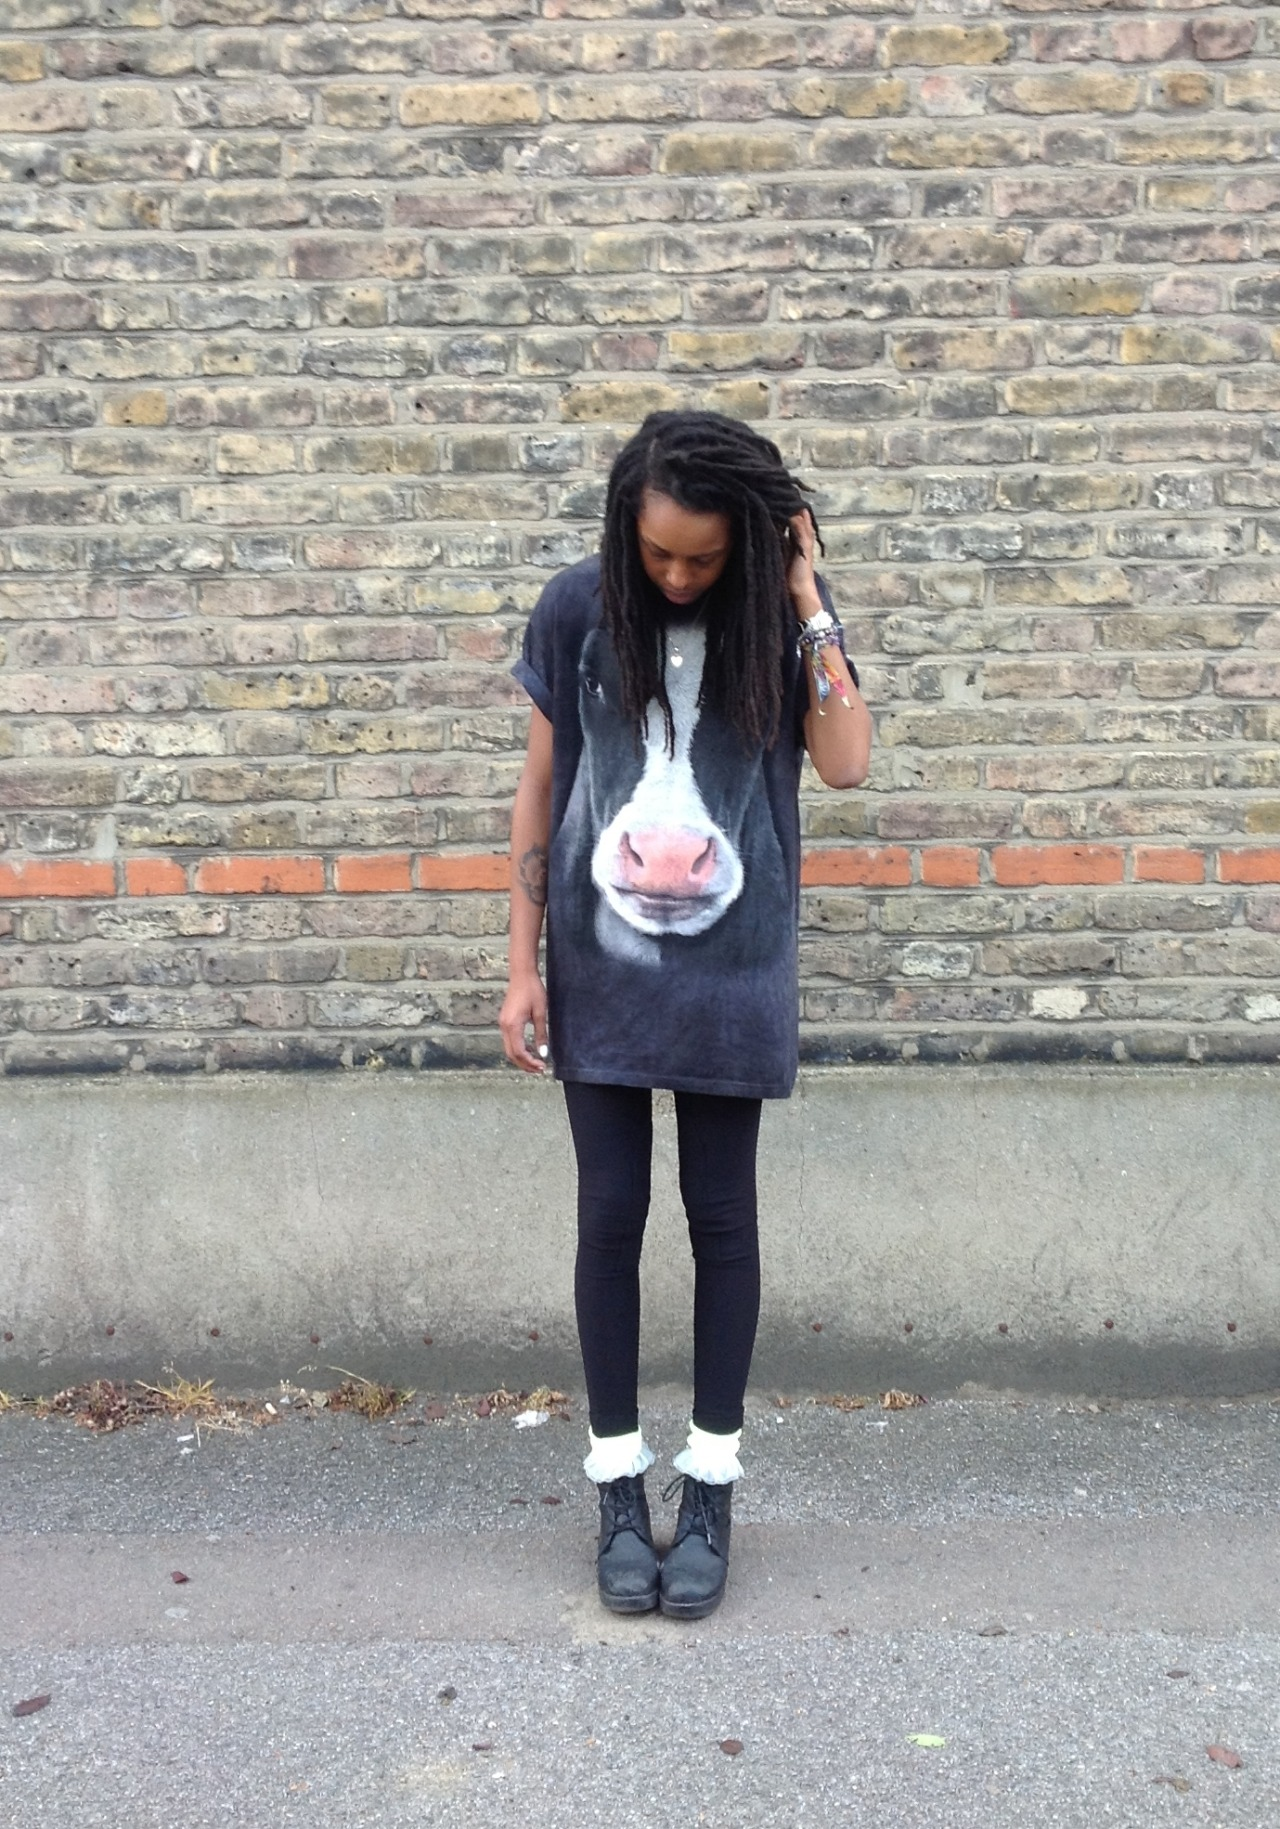 blackfashion:  Ronan, 18, London Instagram: ronanksm http://londonerscalling.tumblr.com/ http://ronanronanronan.blogspot.co.uk